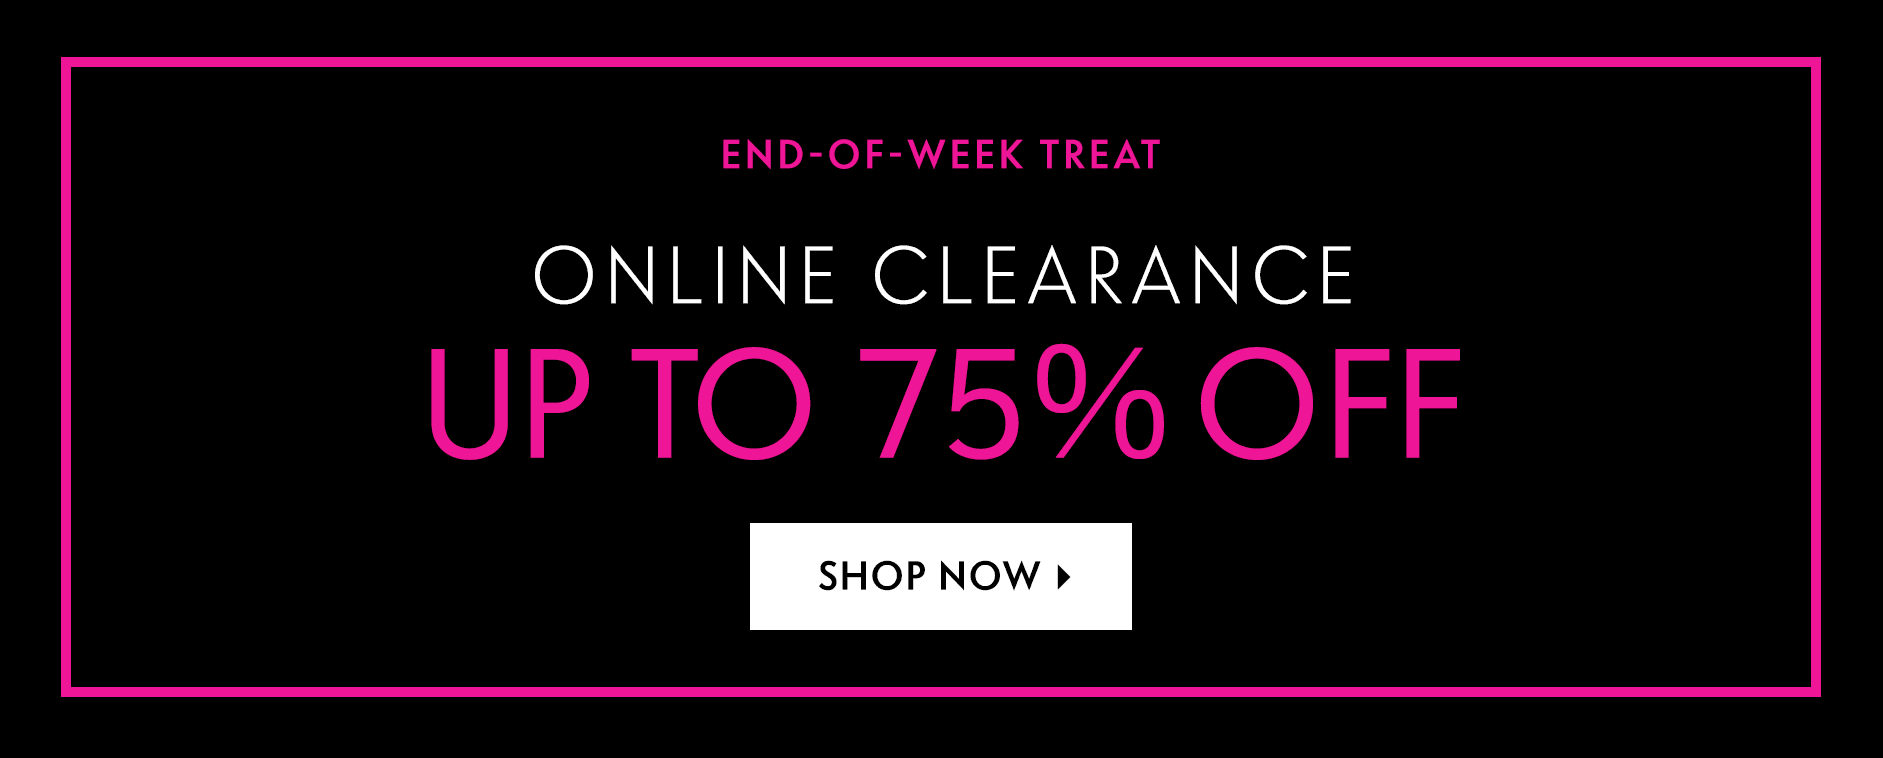 End-of-week Treat: Online Clearance - Up To 75% Off